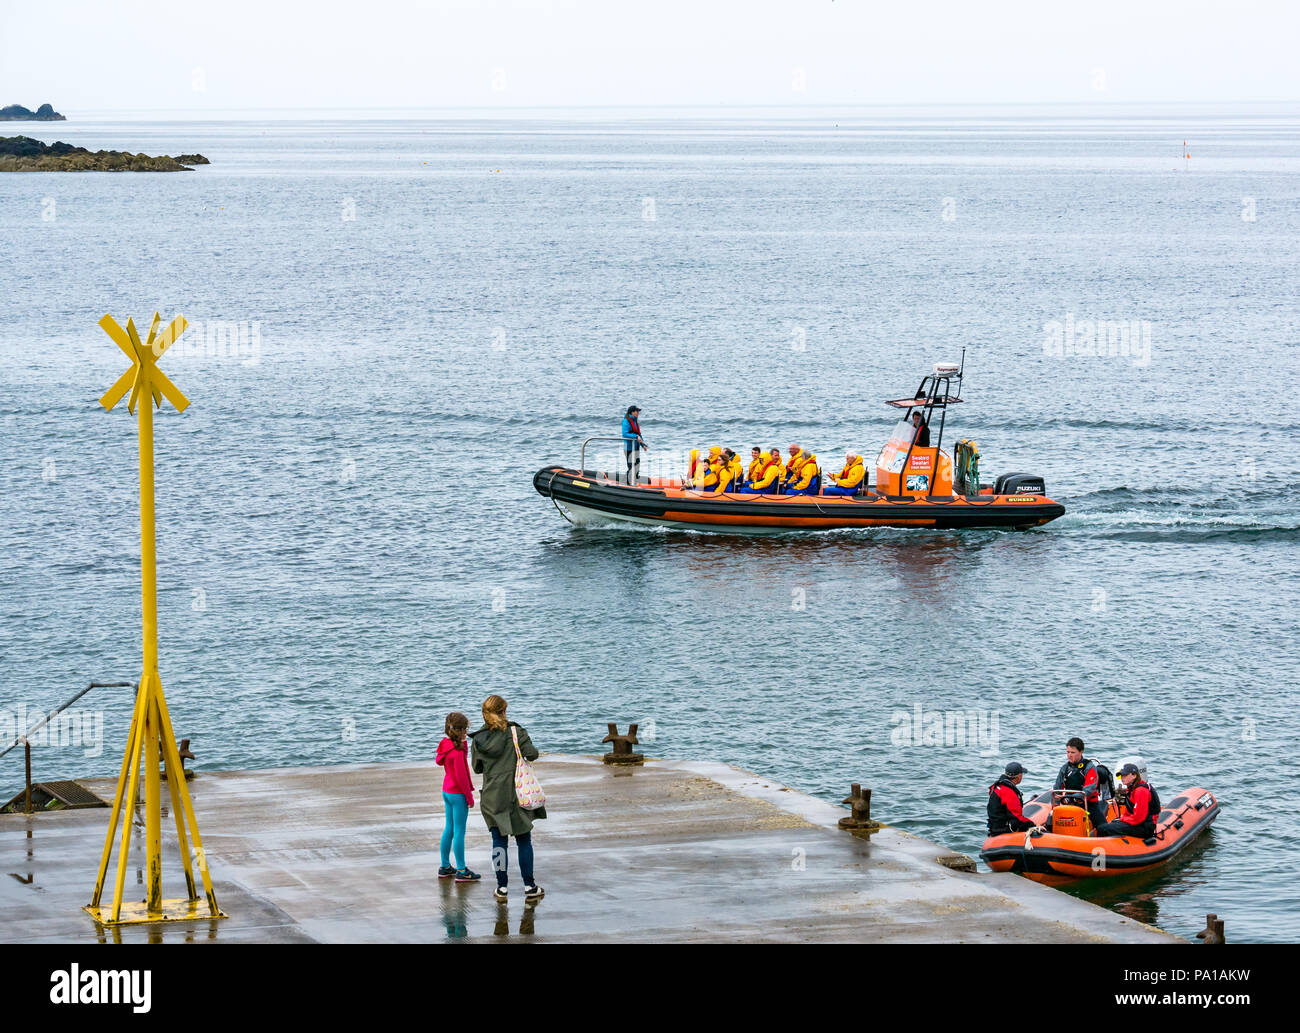 North Berwick, East Lothian, Scotland, United Kingdom, 20th July 2018. A misty morning is a relief for gardeners and farmers in a break from the Summer heatwave, but a damp day for visitors to the seaside town. People on a boat trips from the Scottish Seabird Centre around the islands in the Firth of Forth in a rigid inflatable speed boat - Stock Image